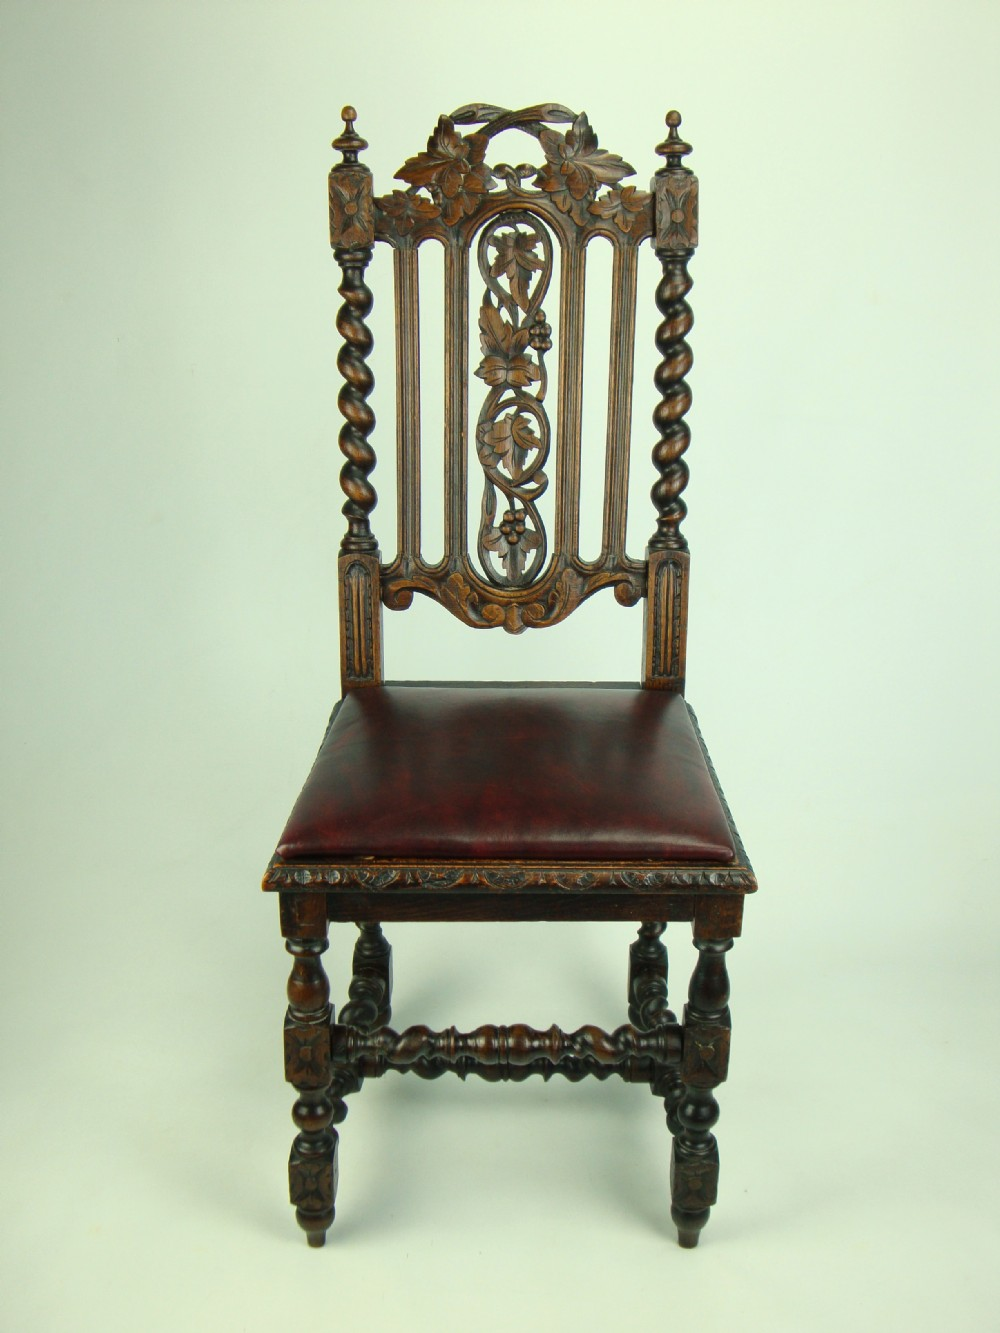 antique victorian gothic oak chair with leather seat - Antique Victorian Gothic Oak Chair With Leather Seat 249814